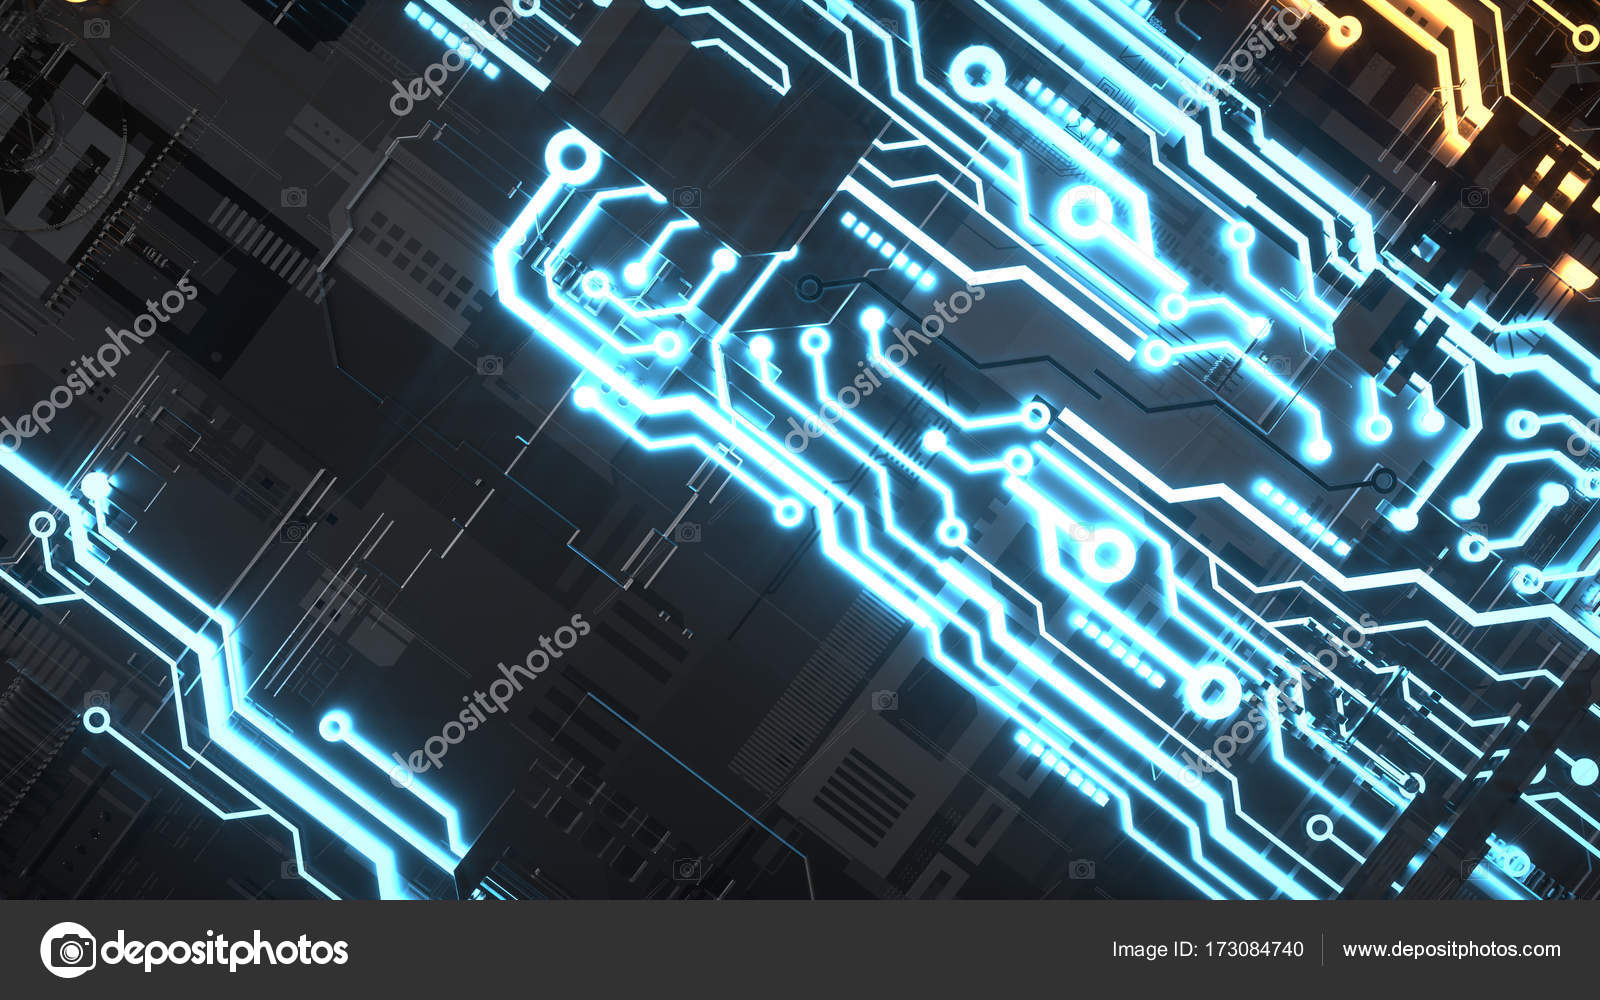 Electronic Circuitry With Gold On Black Background Stock Photo Circuits Diagrams